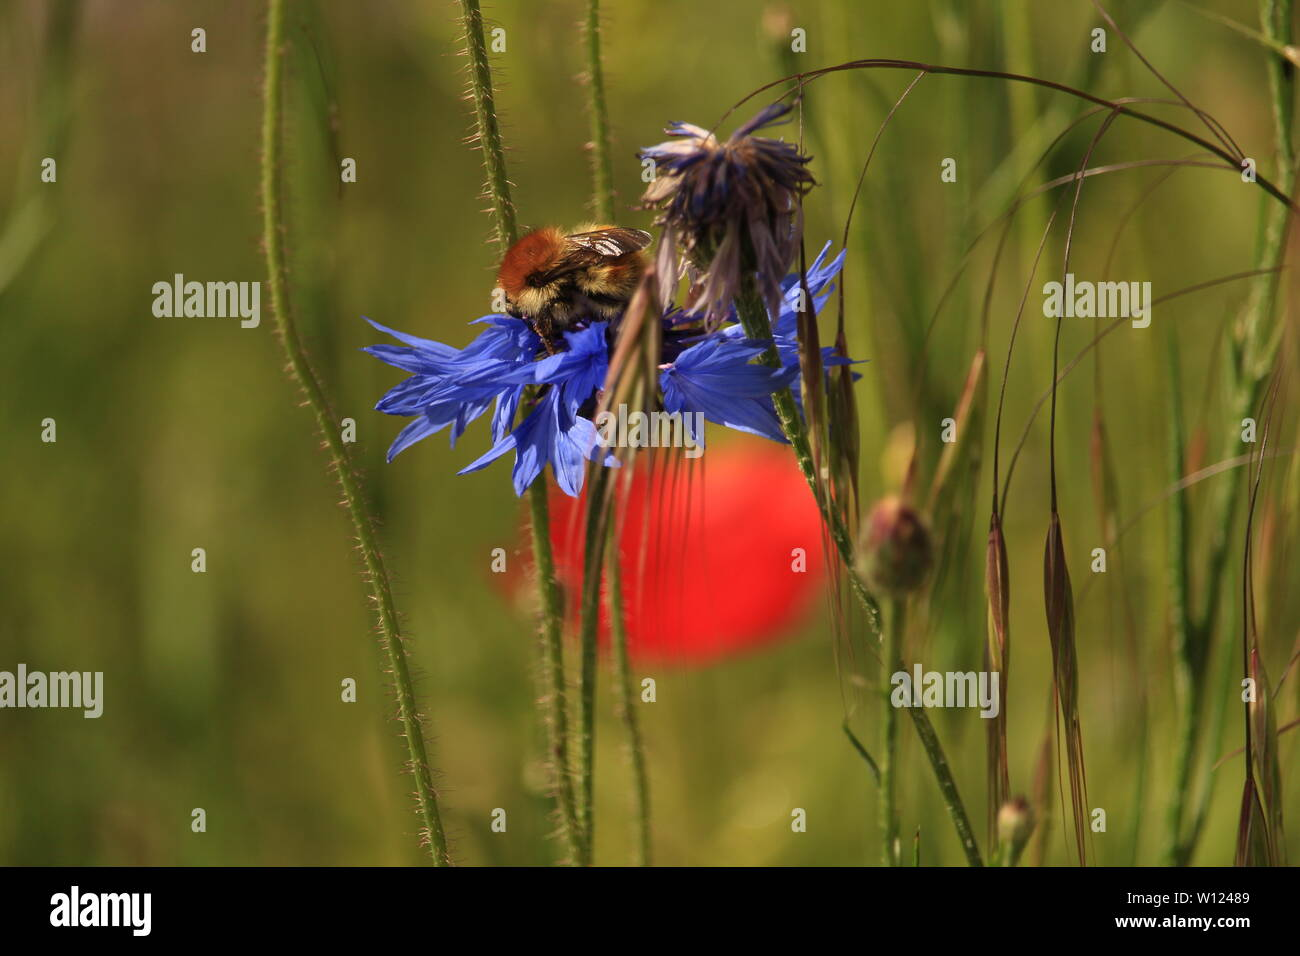 'Bombus on the Rising sun' - A bee forages for nectar on a blue cornflower in a wildflower meadow in the Essex countryside. - Stock Image